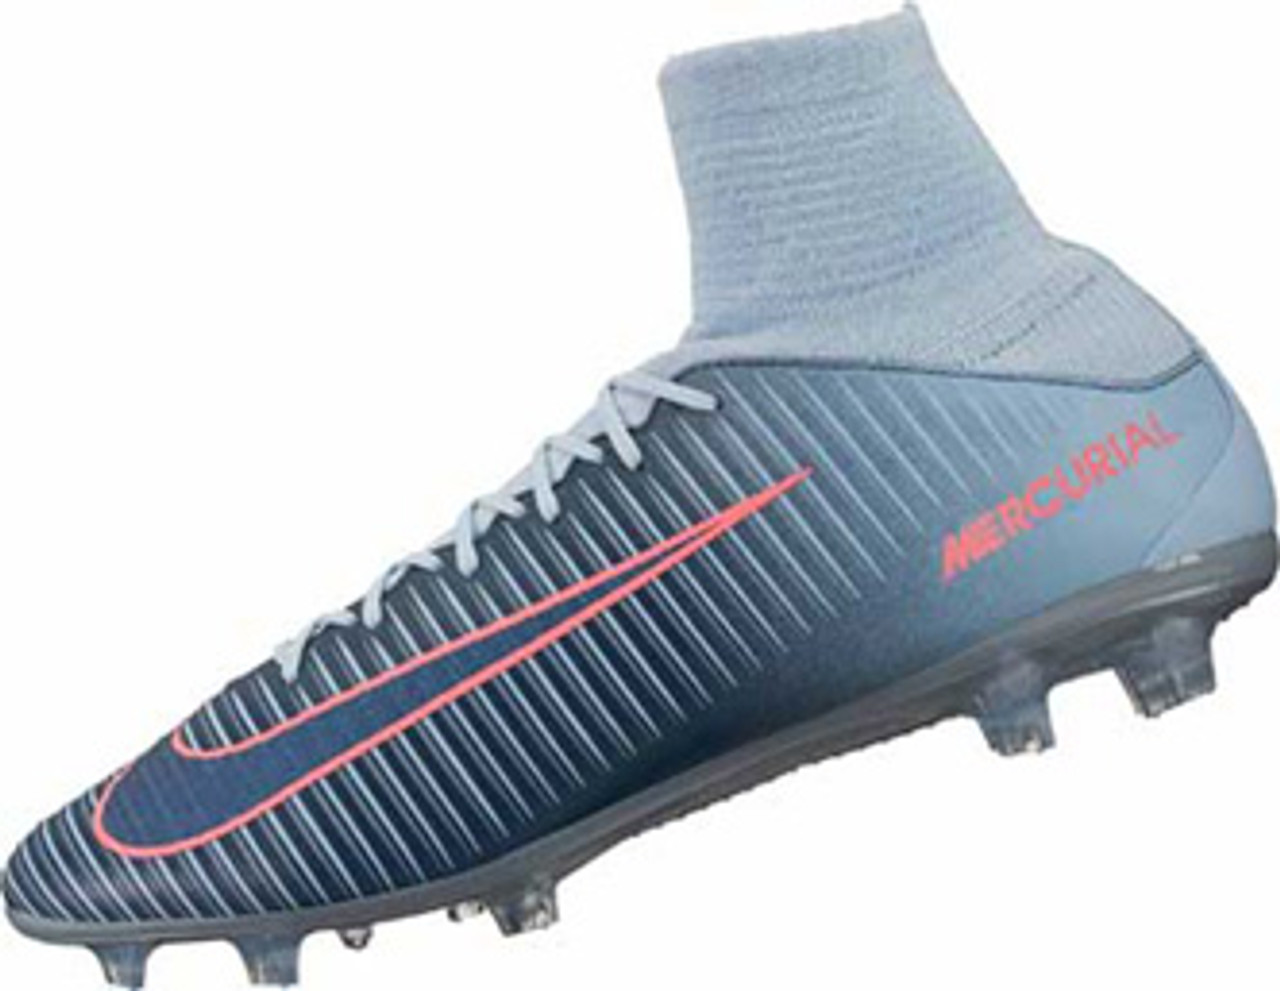 39f4d28282ad NIKE MERCURIAL VELOCE III DF FG Light Armory Blue - Soccer Plus